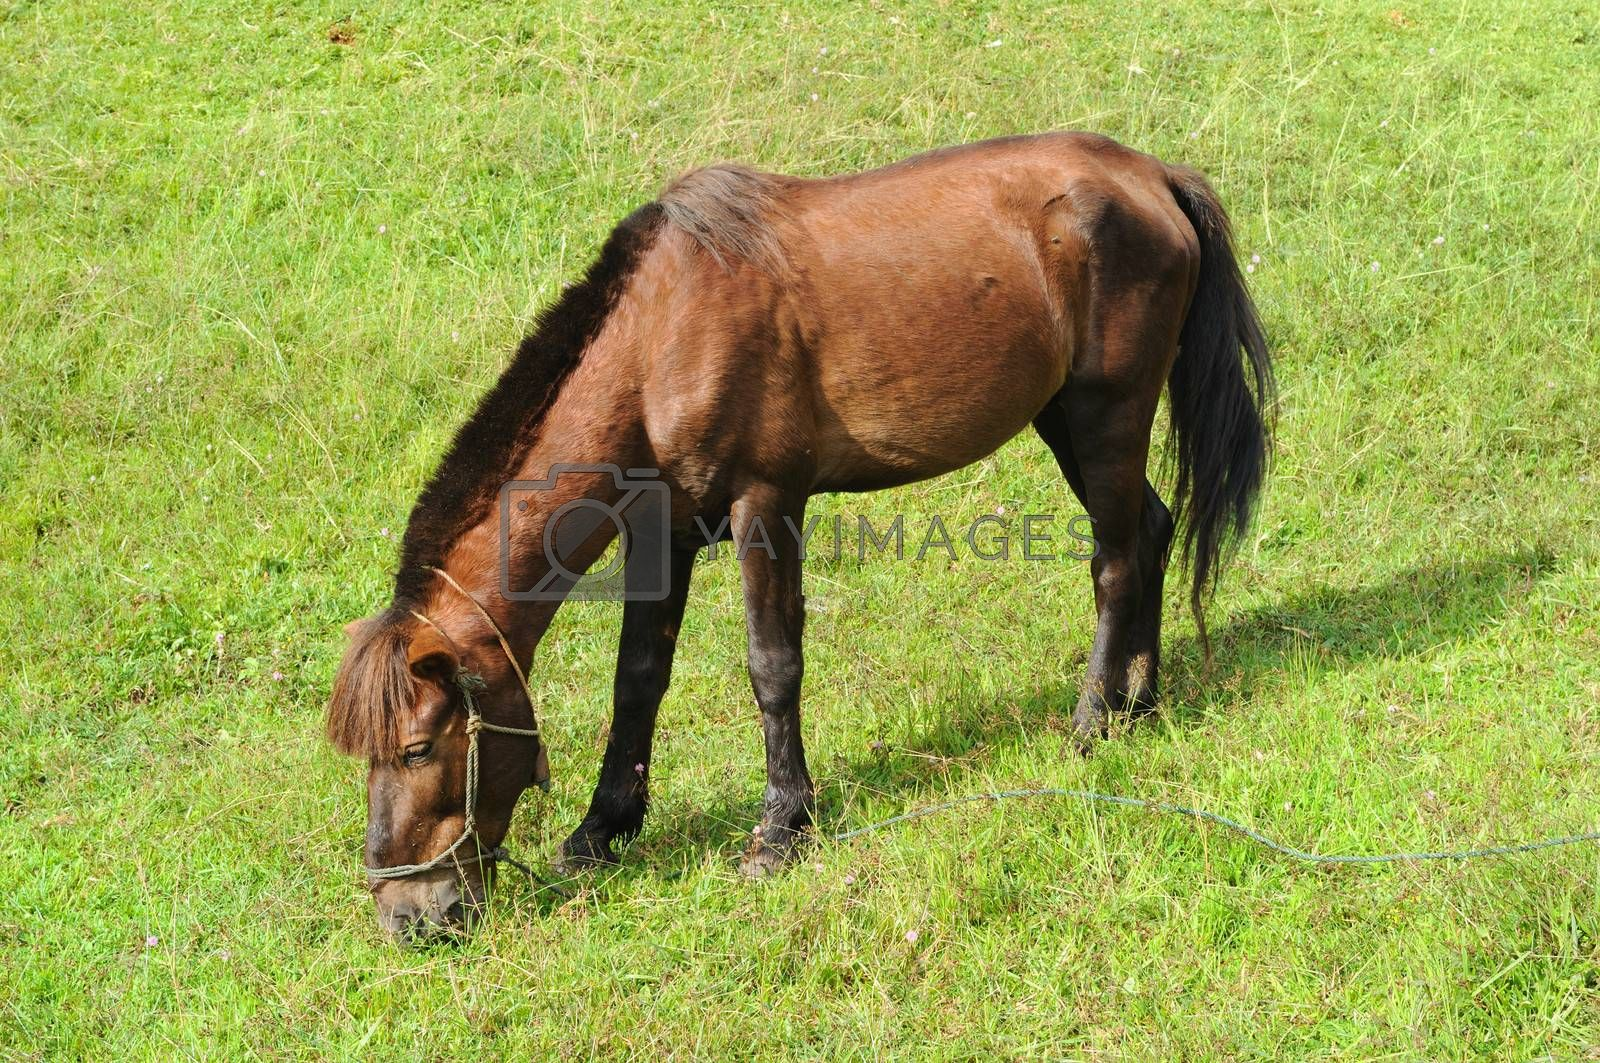 Royalty free image of Thai Horse by letoakin